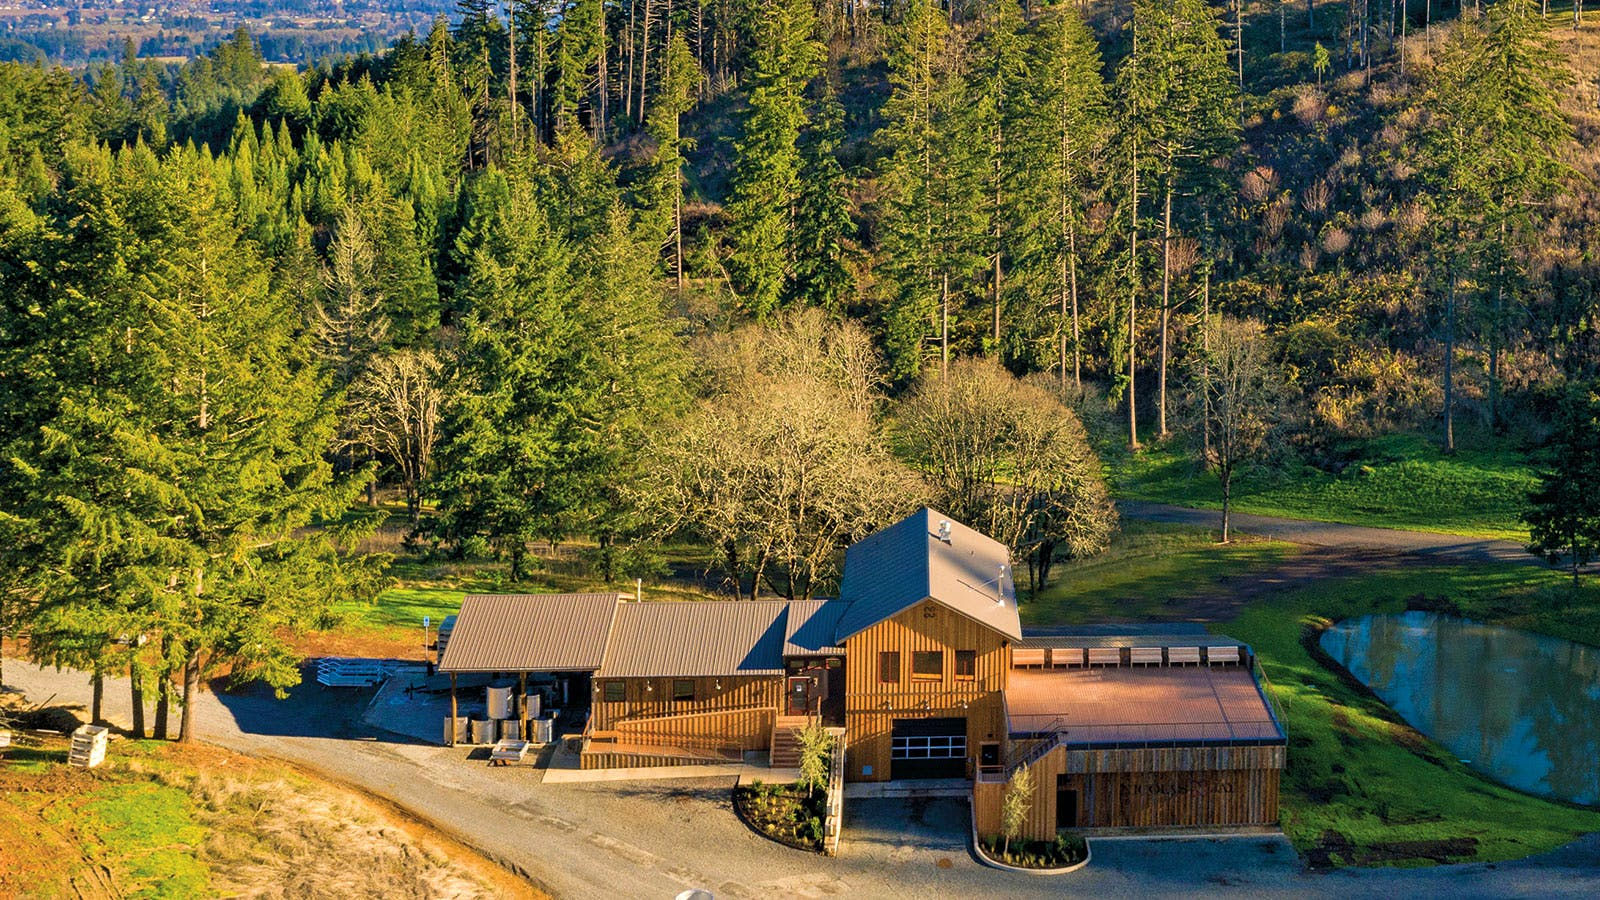 Oregon's Long-Lived Pinot Noirs